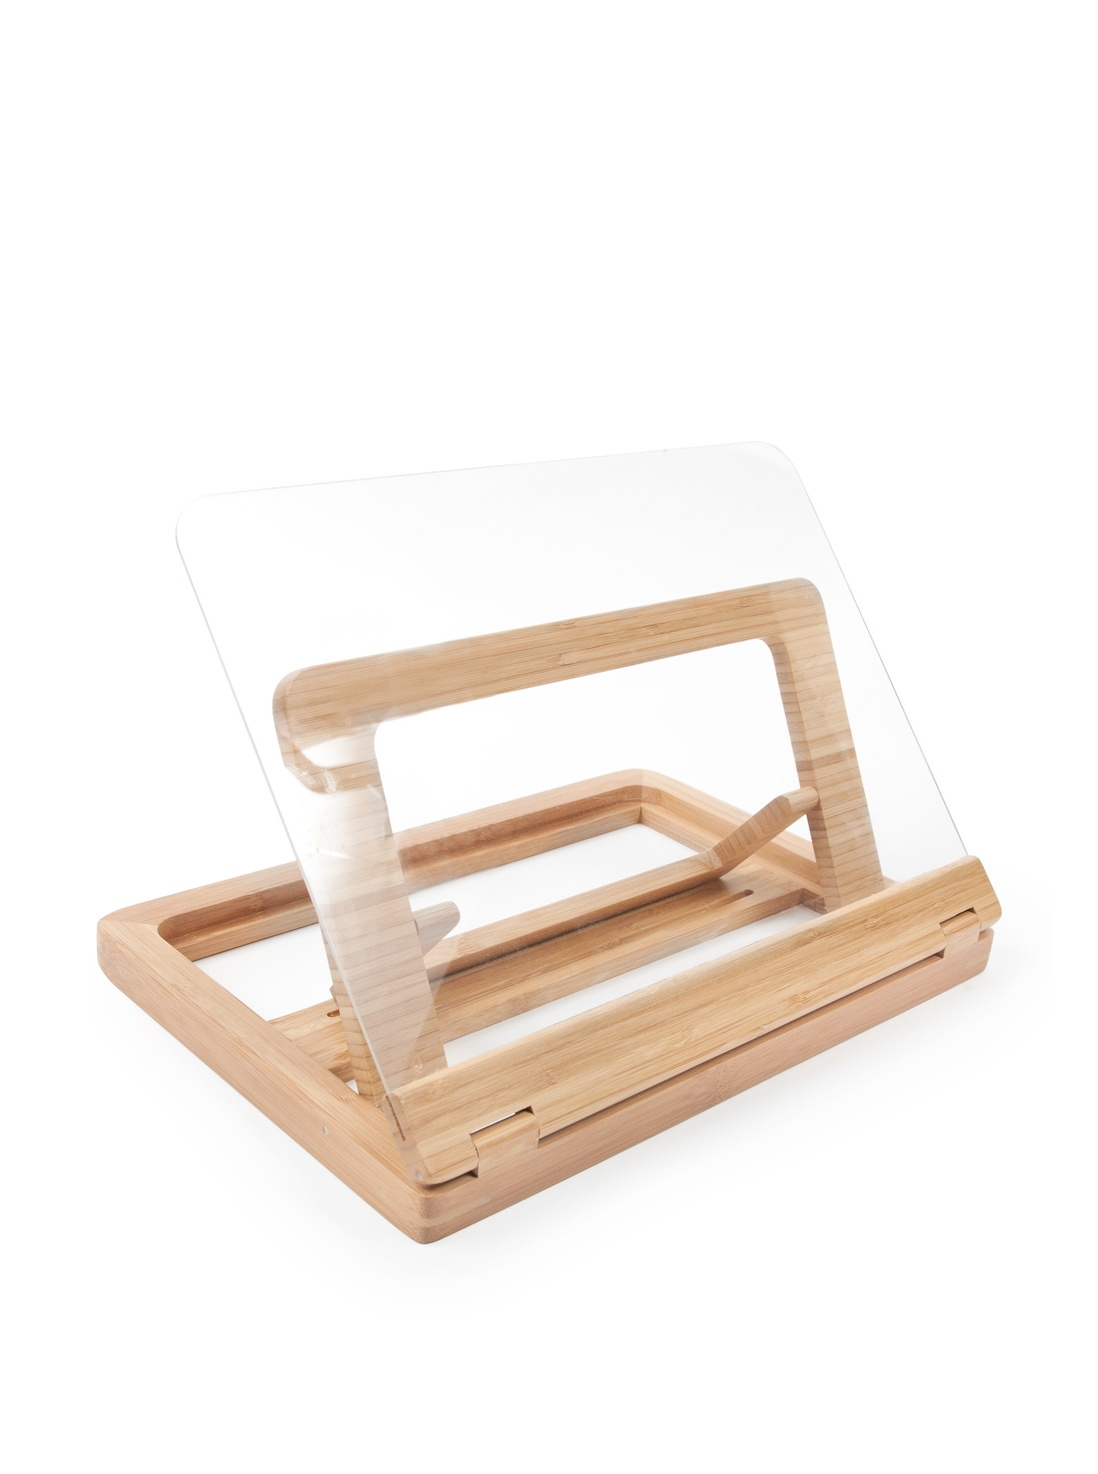 Bamboo Cookbook Holder - Made From 100% Organically Grown Bamboo